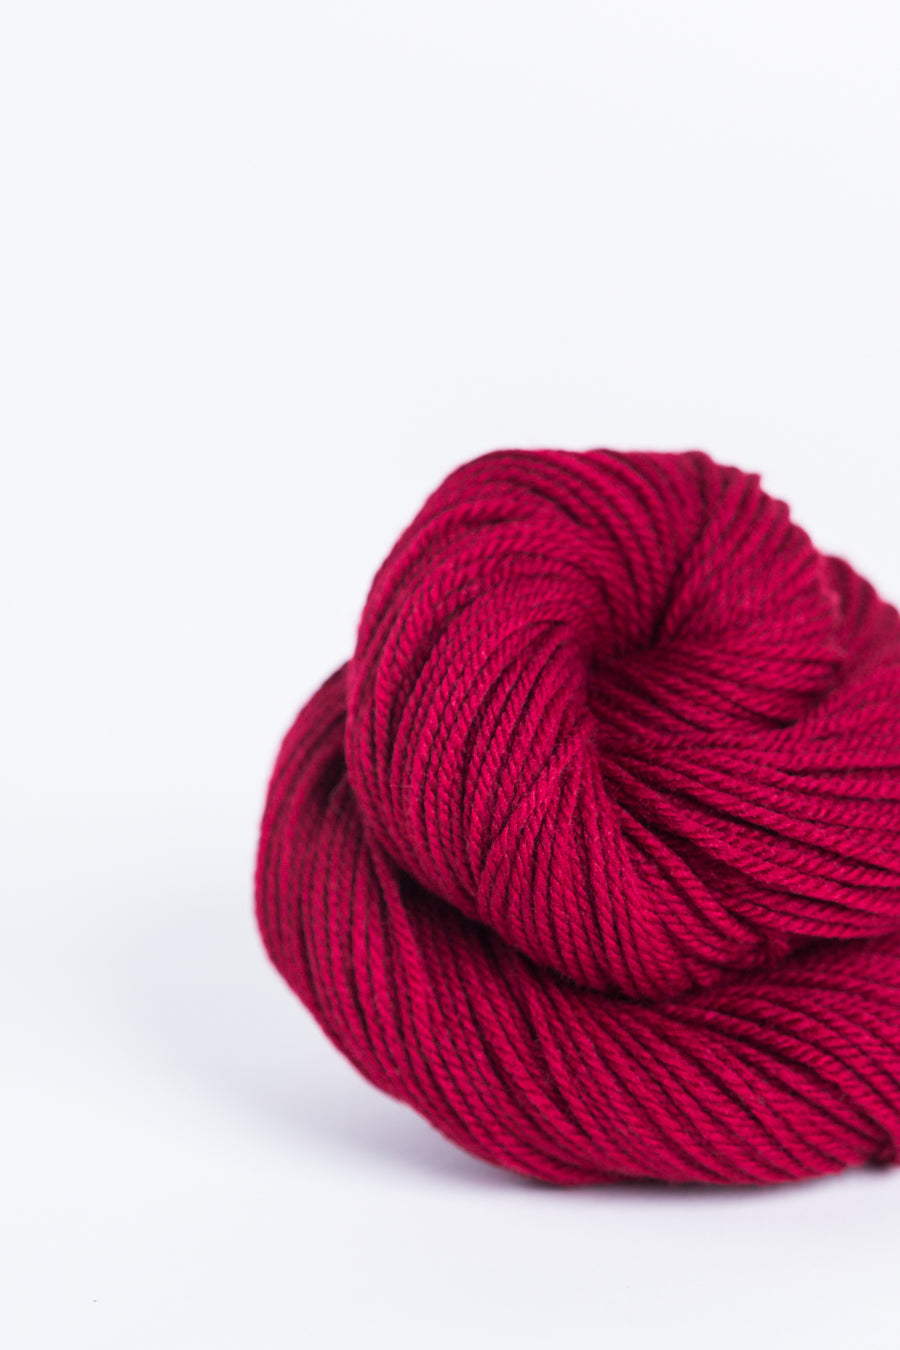 Brooklyn Tweed Yarn - Arbor